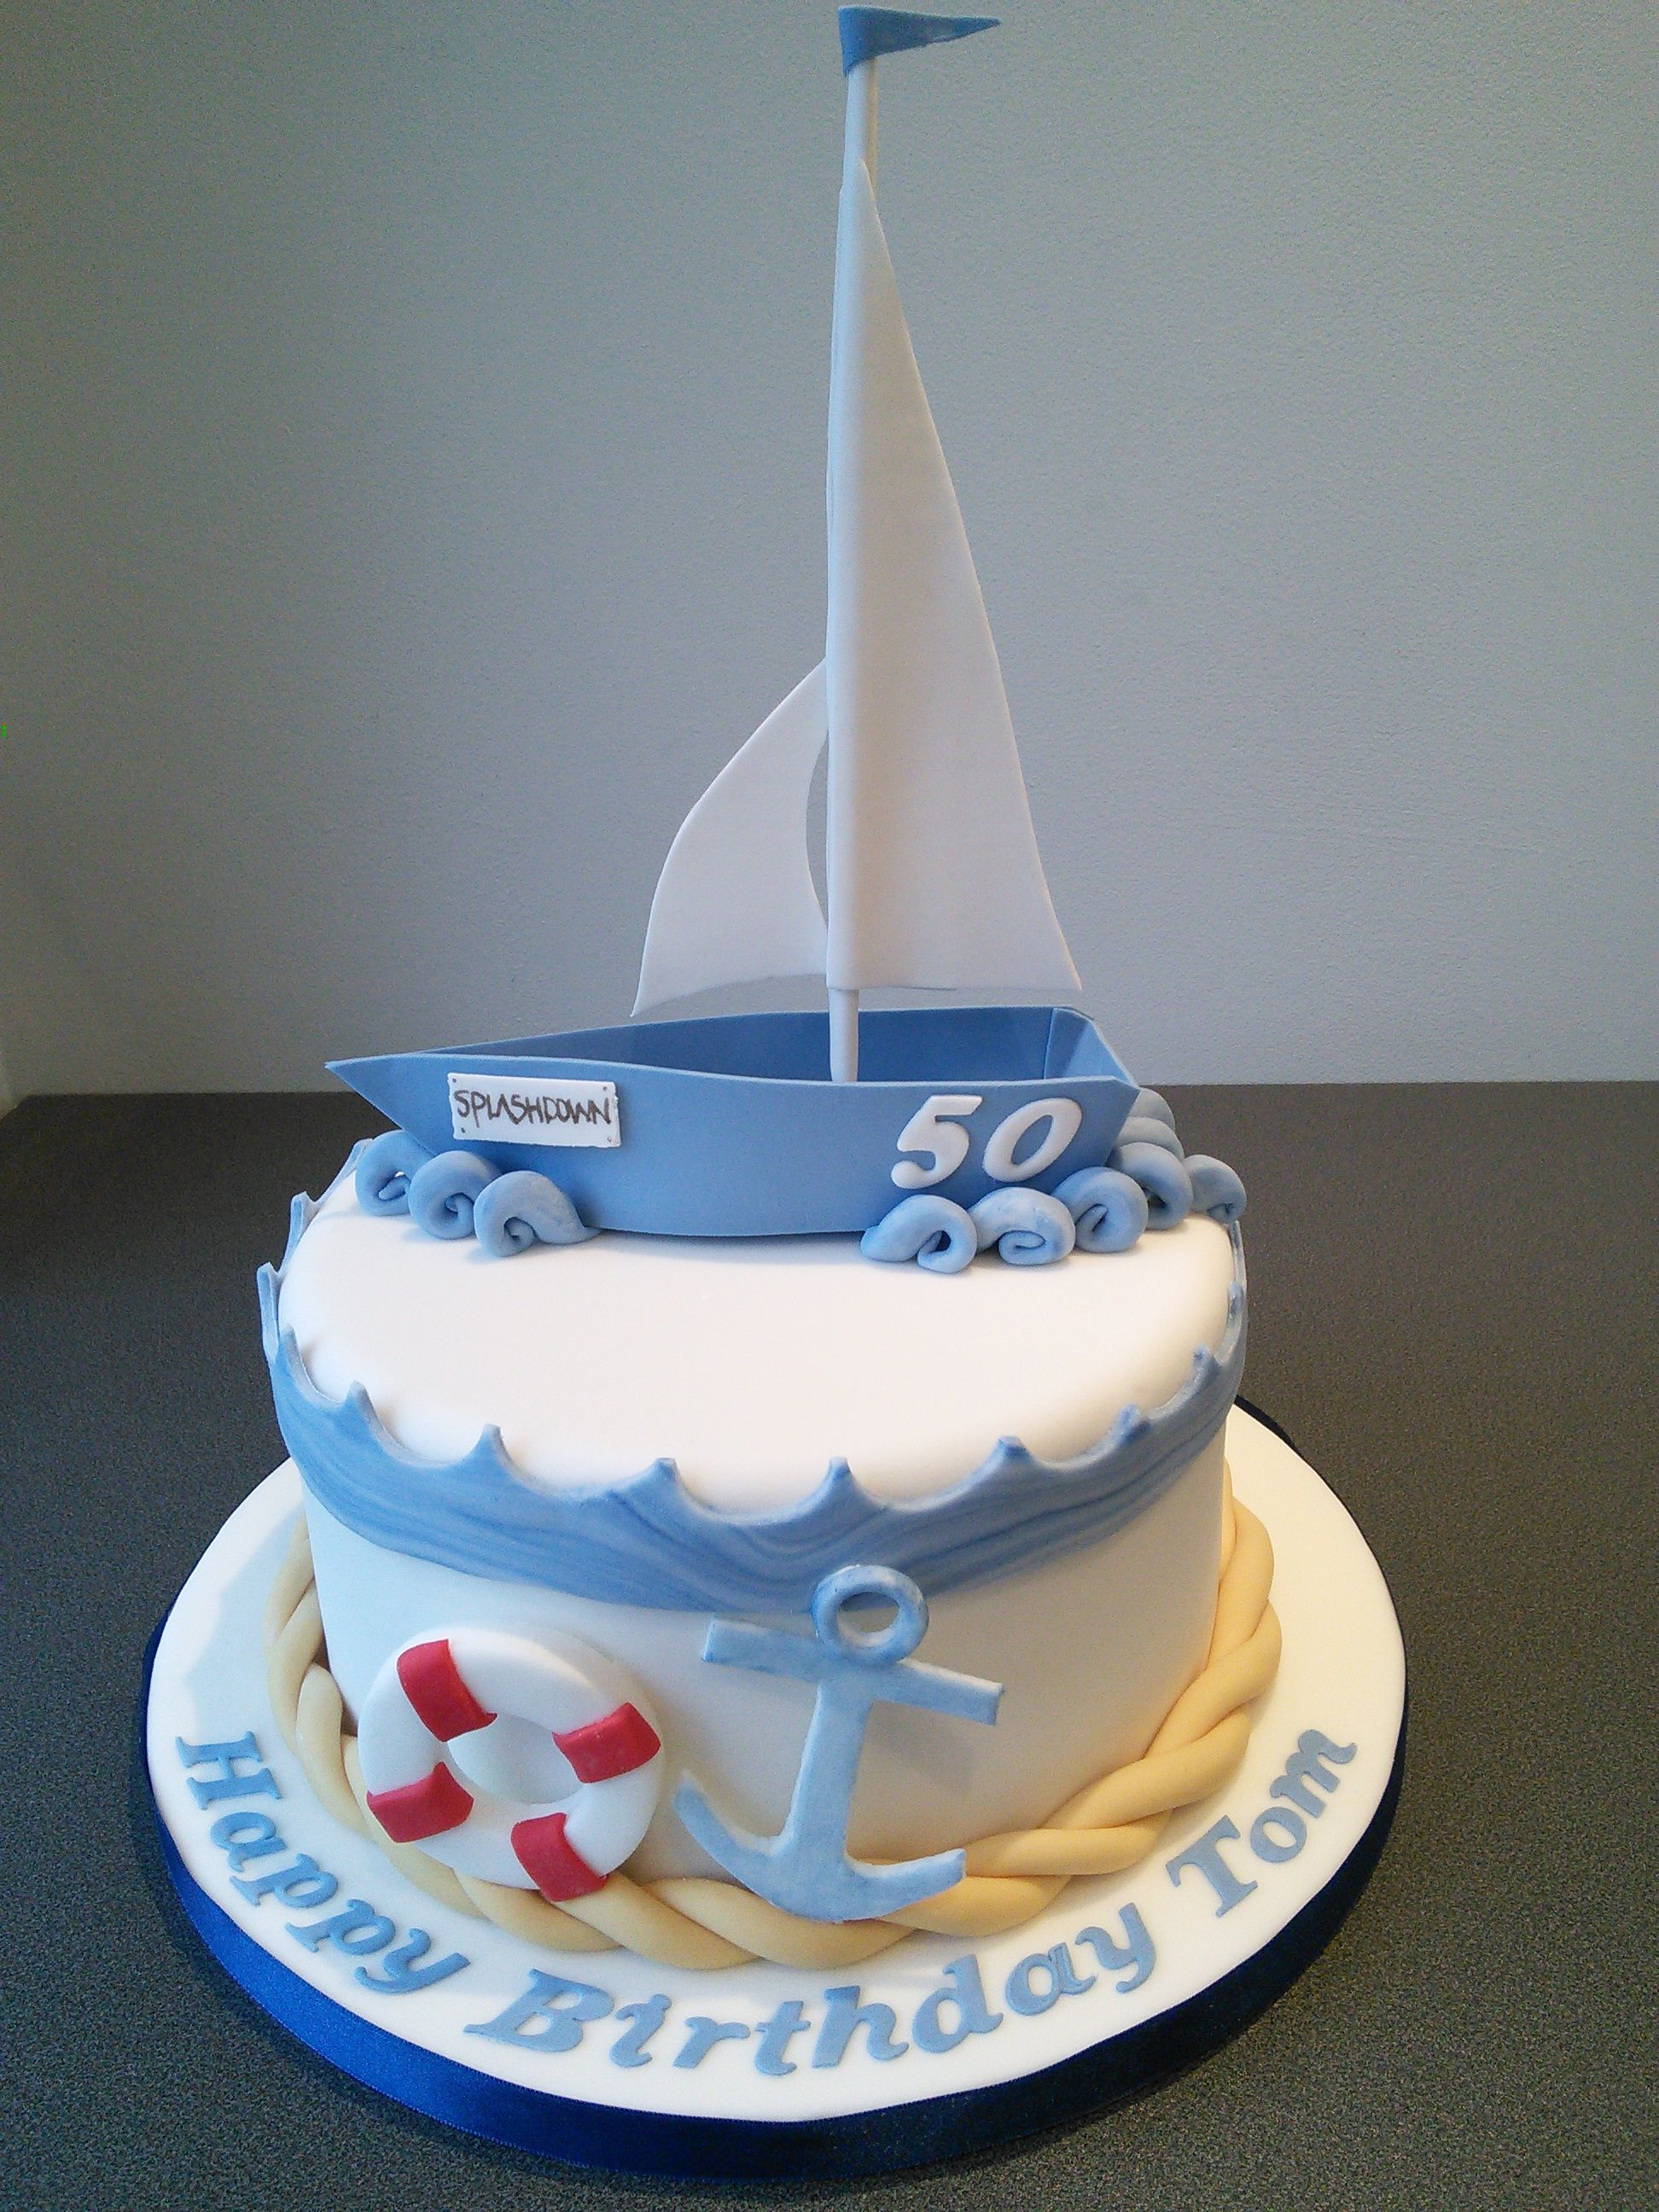 Sailing Boat Birthday Cake Wow Pinterest Sailing Boat